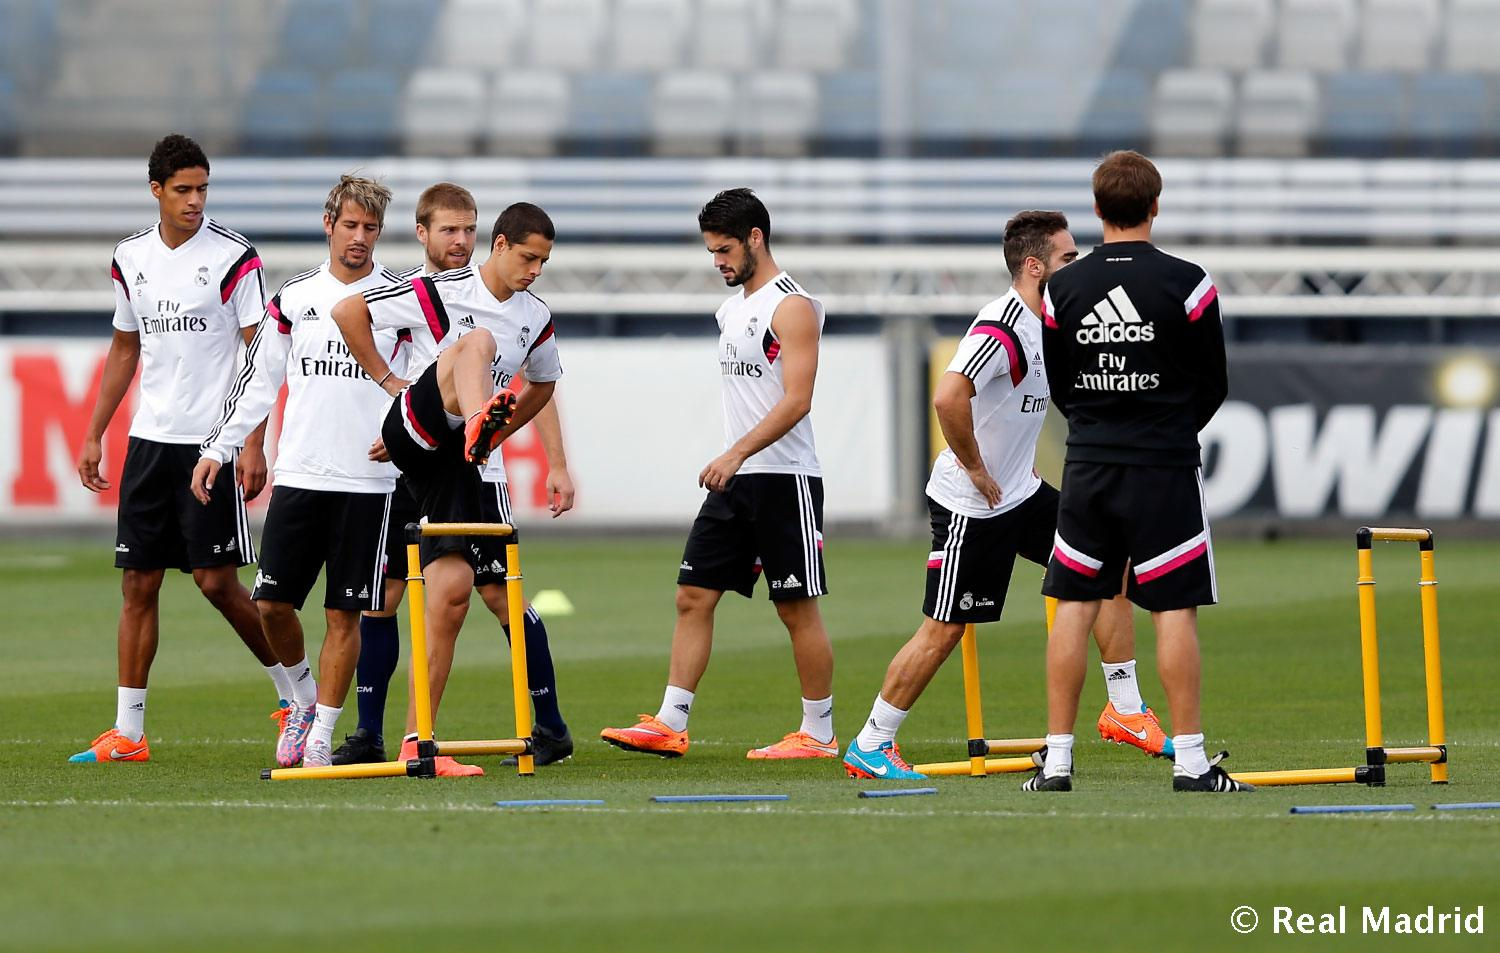 Real Madrid - Entrenamiento del Real Madrid - 17-09-2014